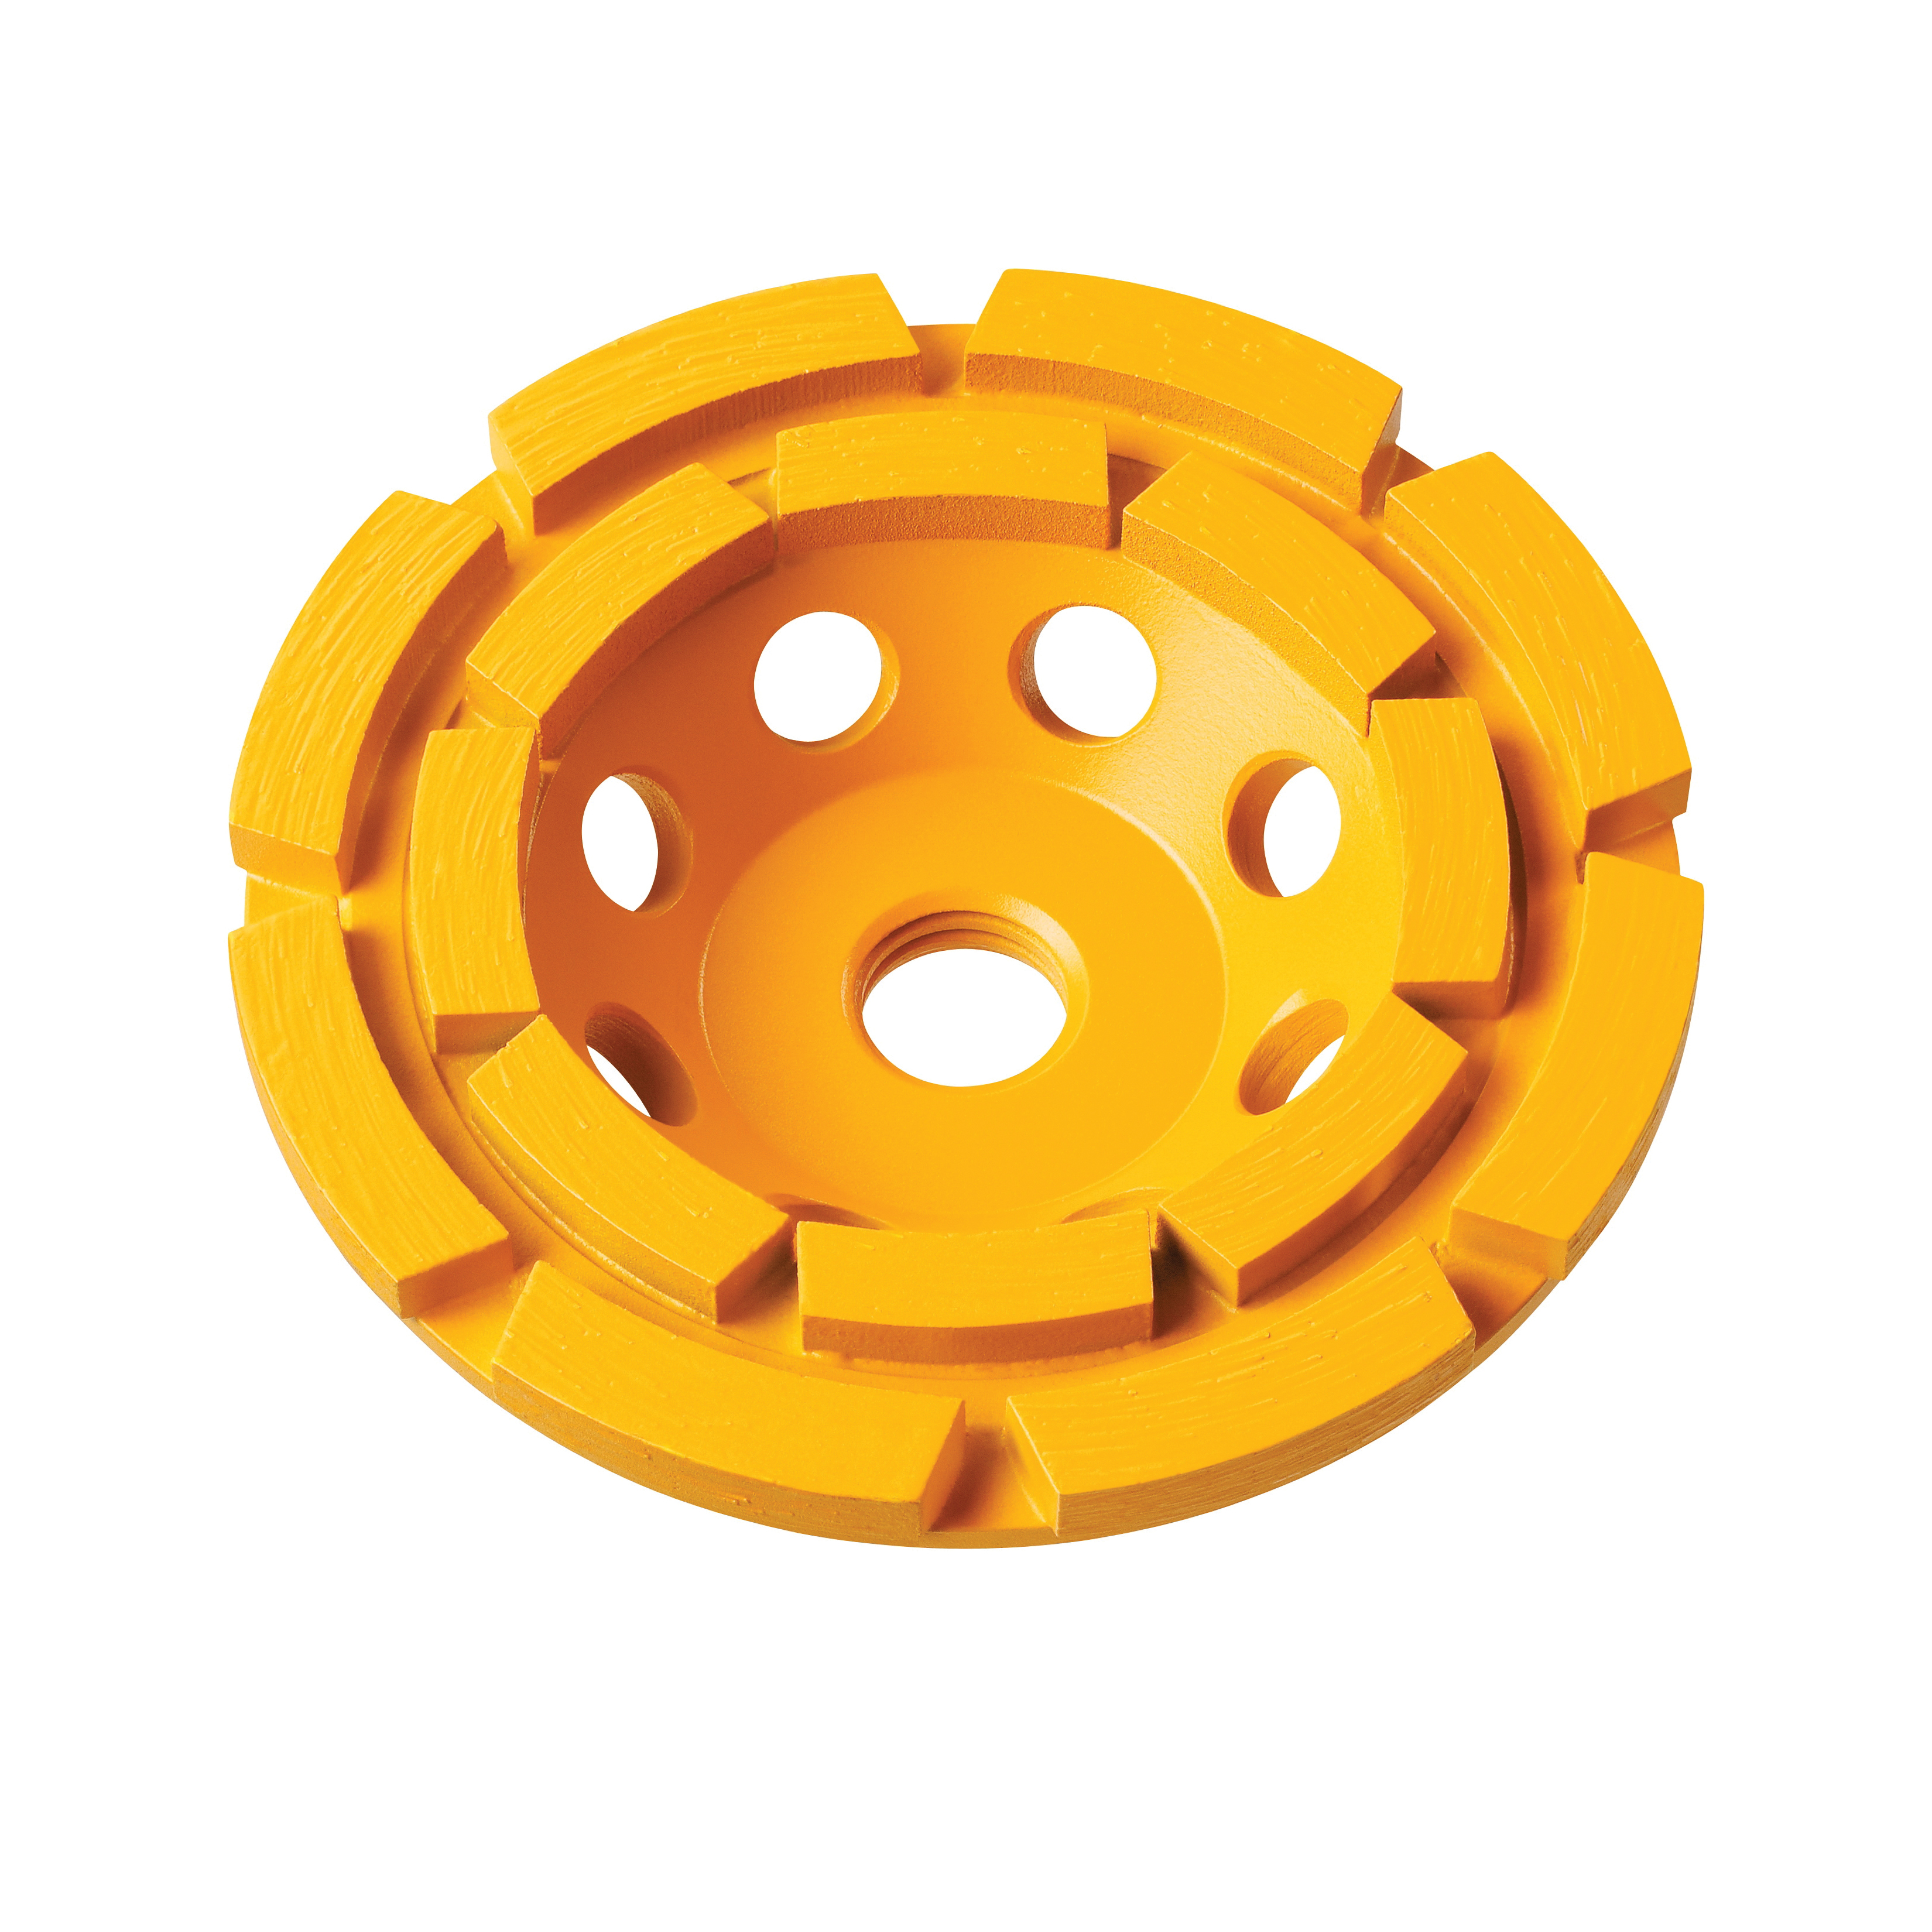 DeWALT® XP™ DW4777 Double Row General Purpose Cup Wheel, 5 in Dia x 1.1 in THK, Diamond Abrasive